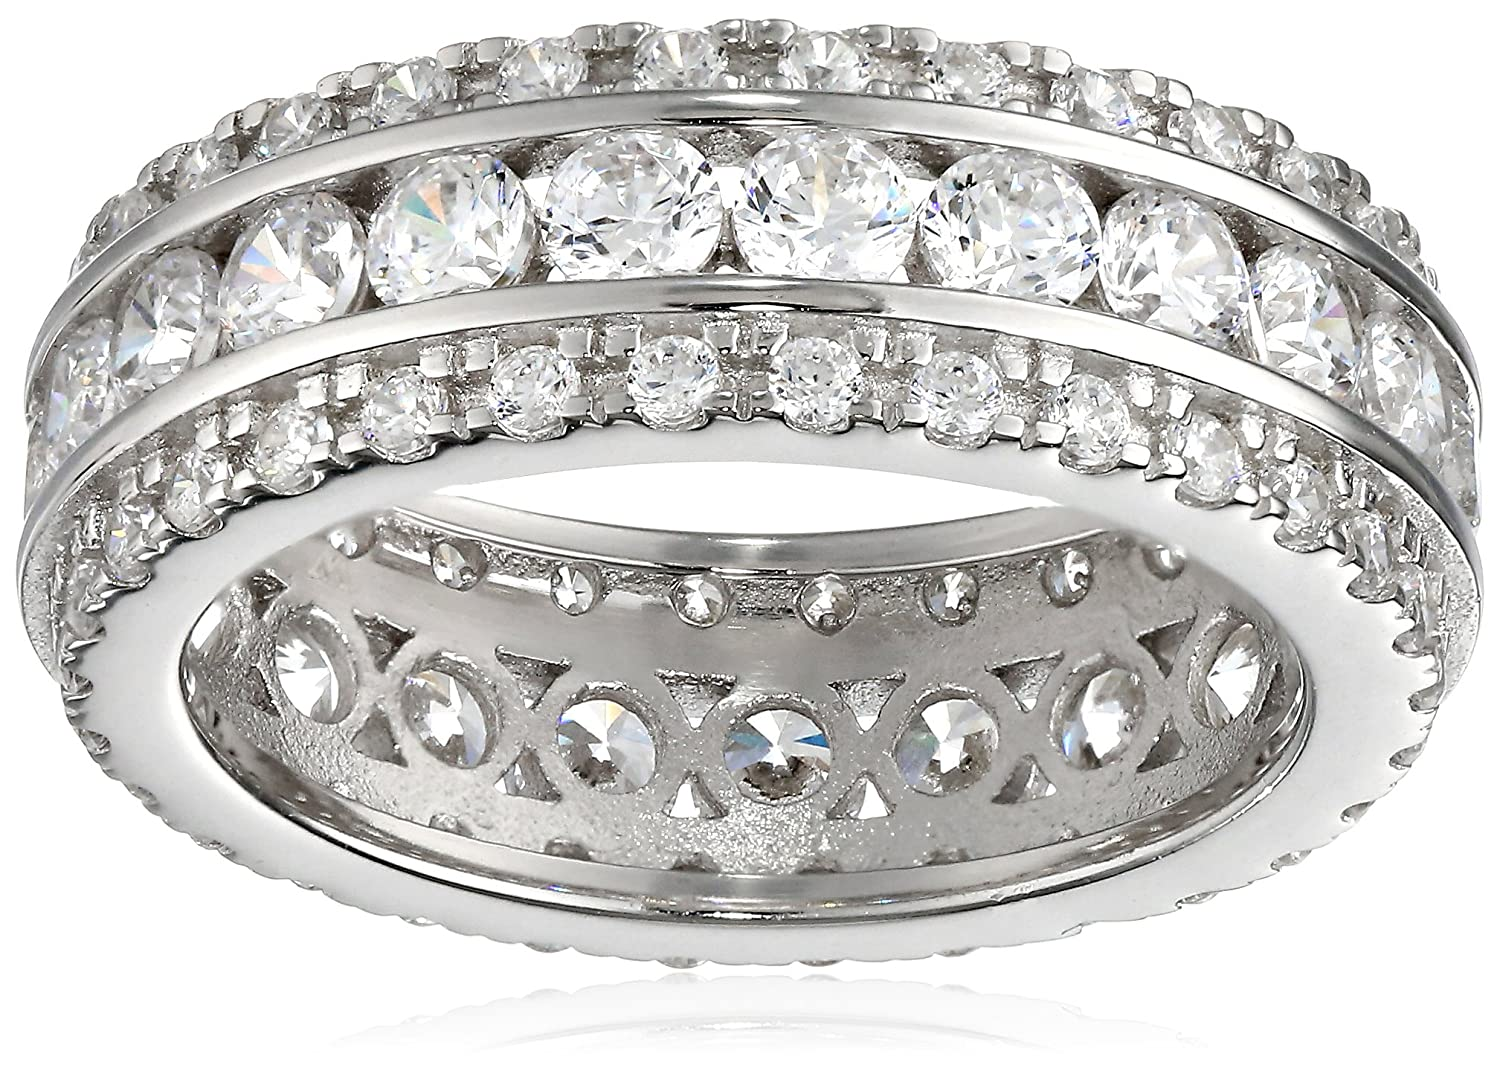 Charles Winston, Sterling Silver, Cubic Zirconia Band, 2.50 ct. tw. Cubic Zirconia Band Size 6 RG1964v1-6